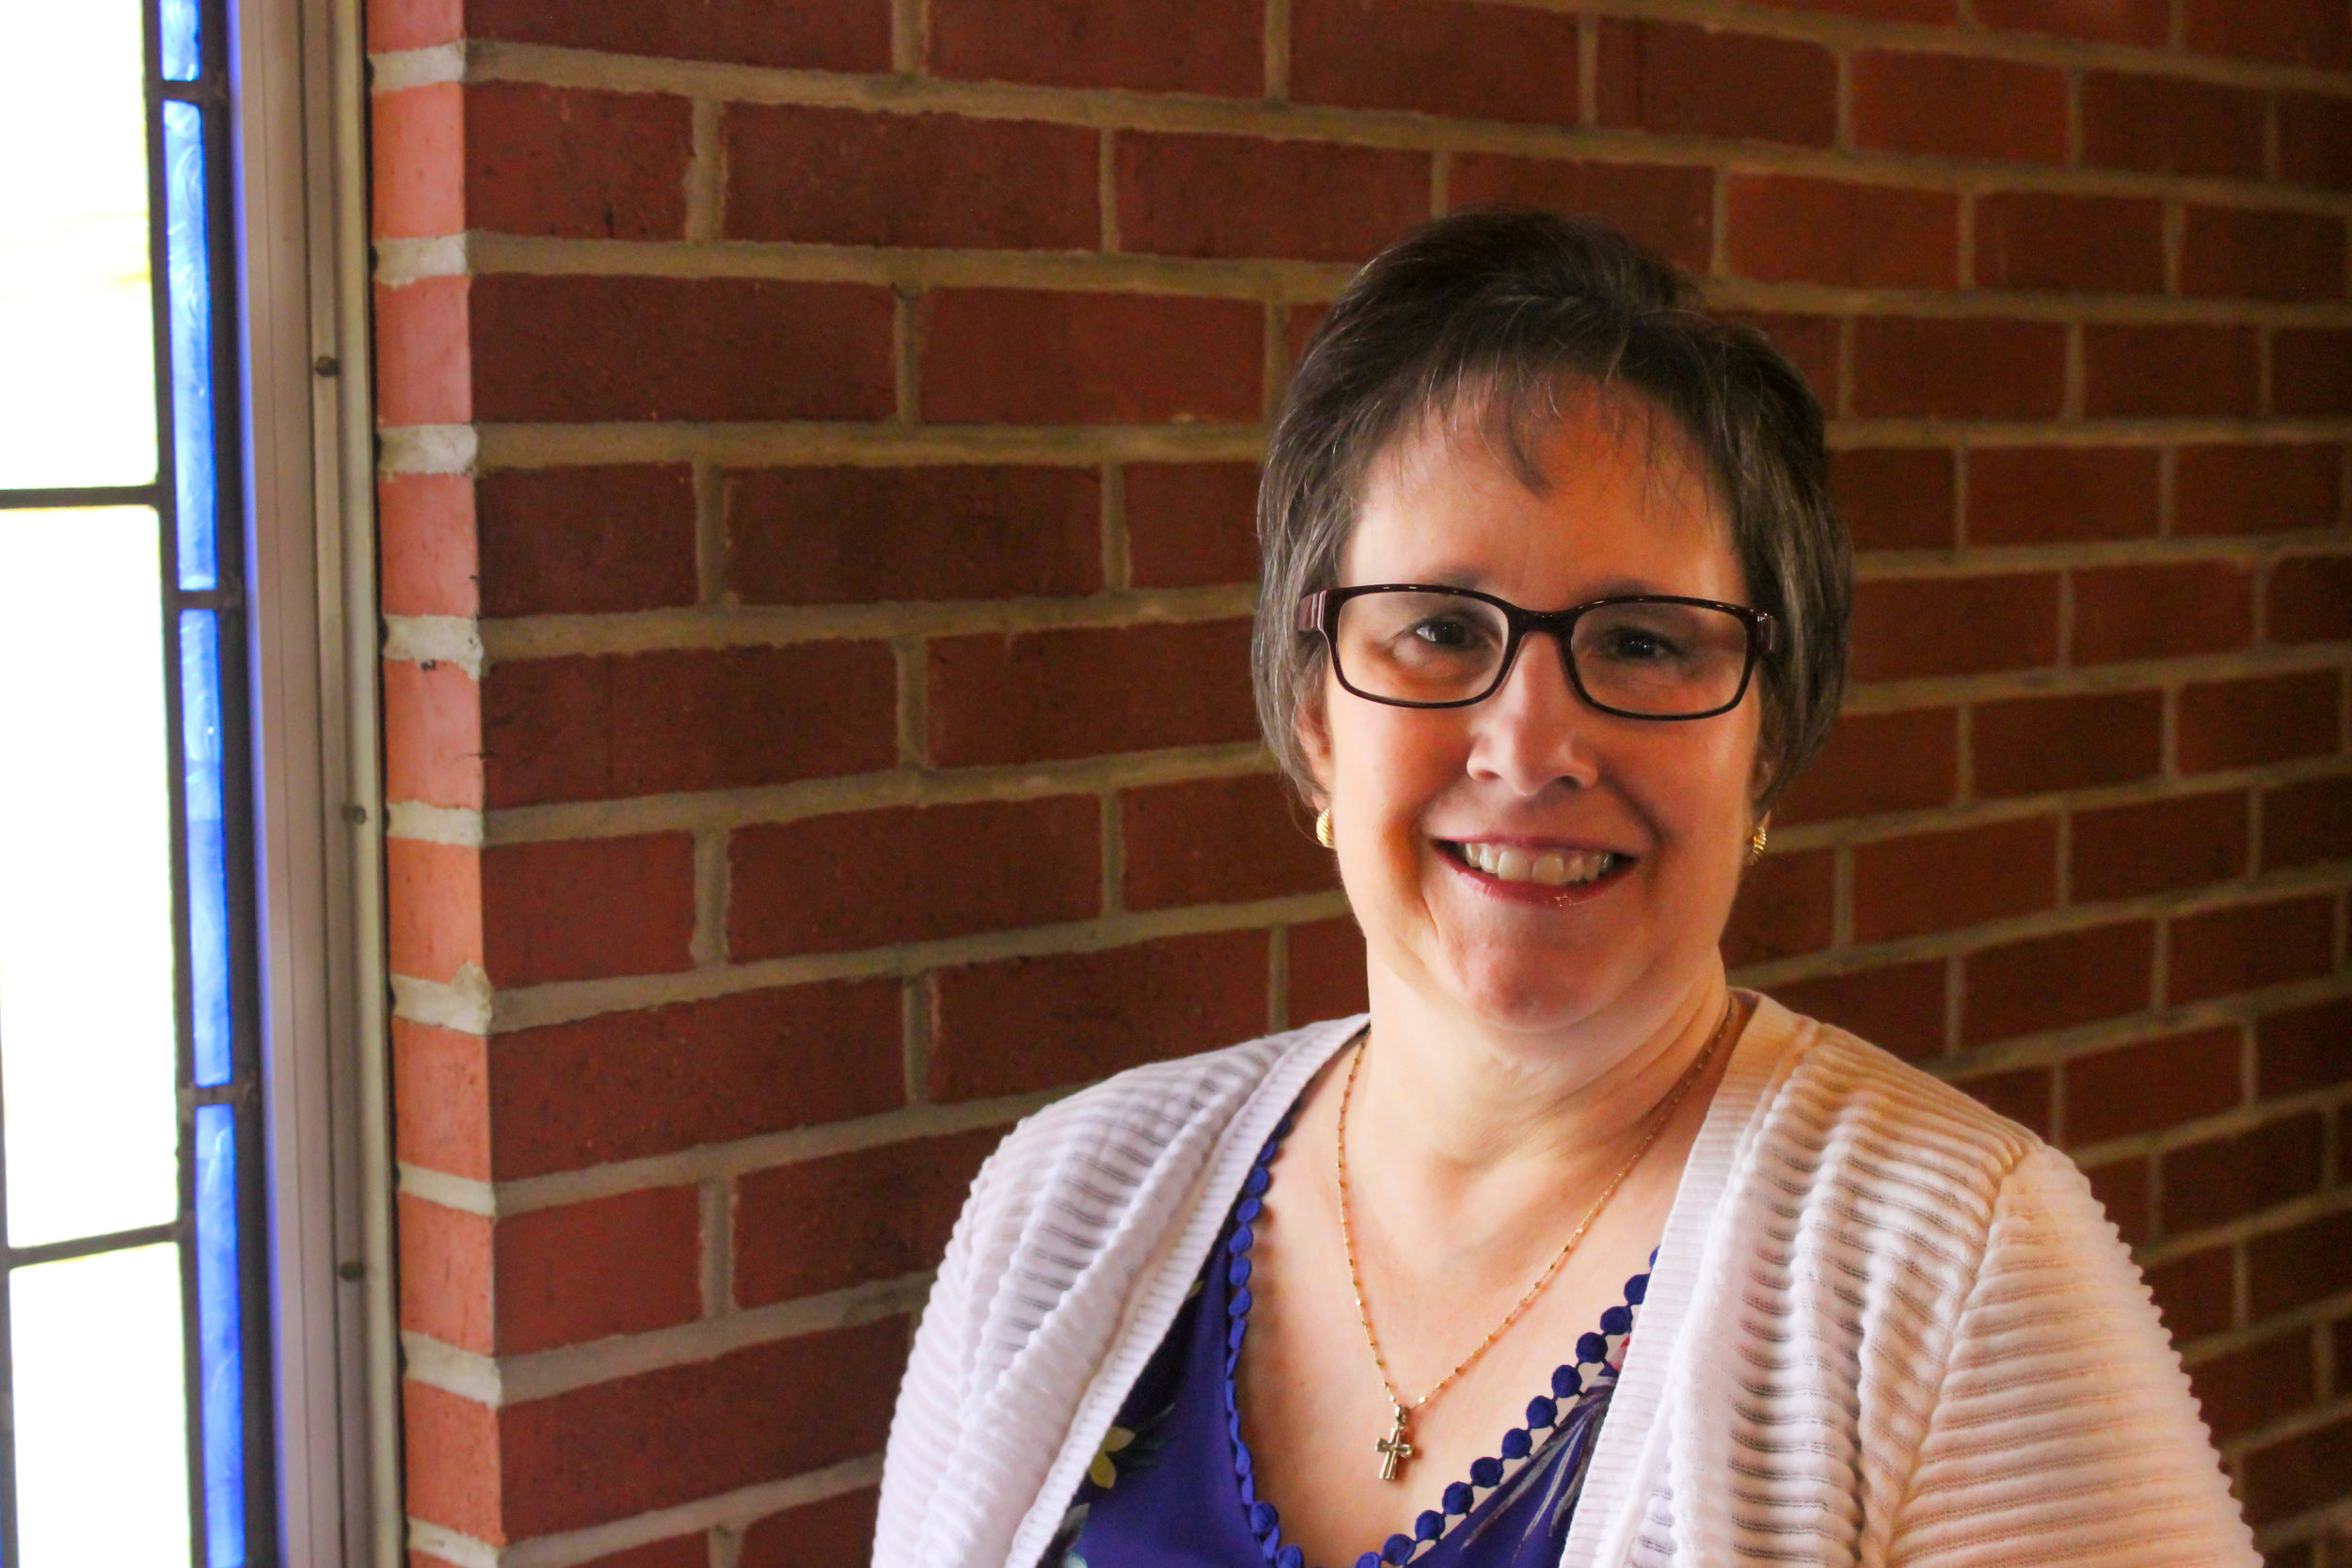 pAM dOW - OrganistPam has served as Organist at Matthews Memorial since November 2010. She currently also serves as a Guest Services Representative for Vanderbilt Medical Center at One Hundred Oaks. Read more...